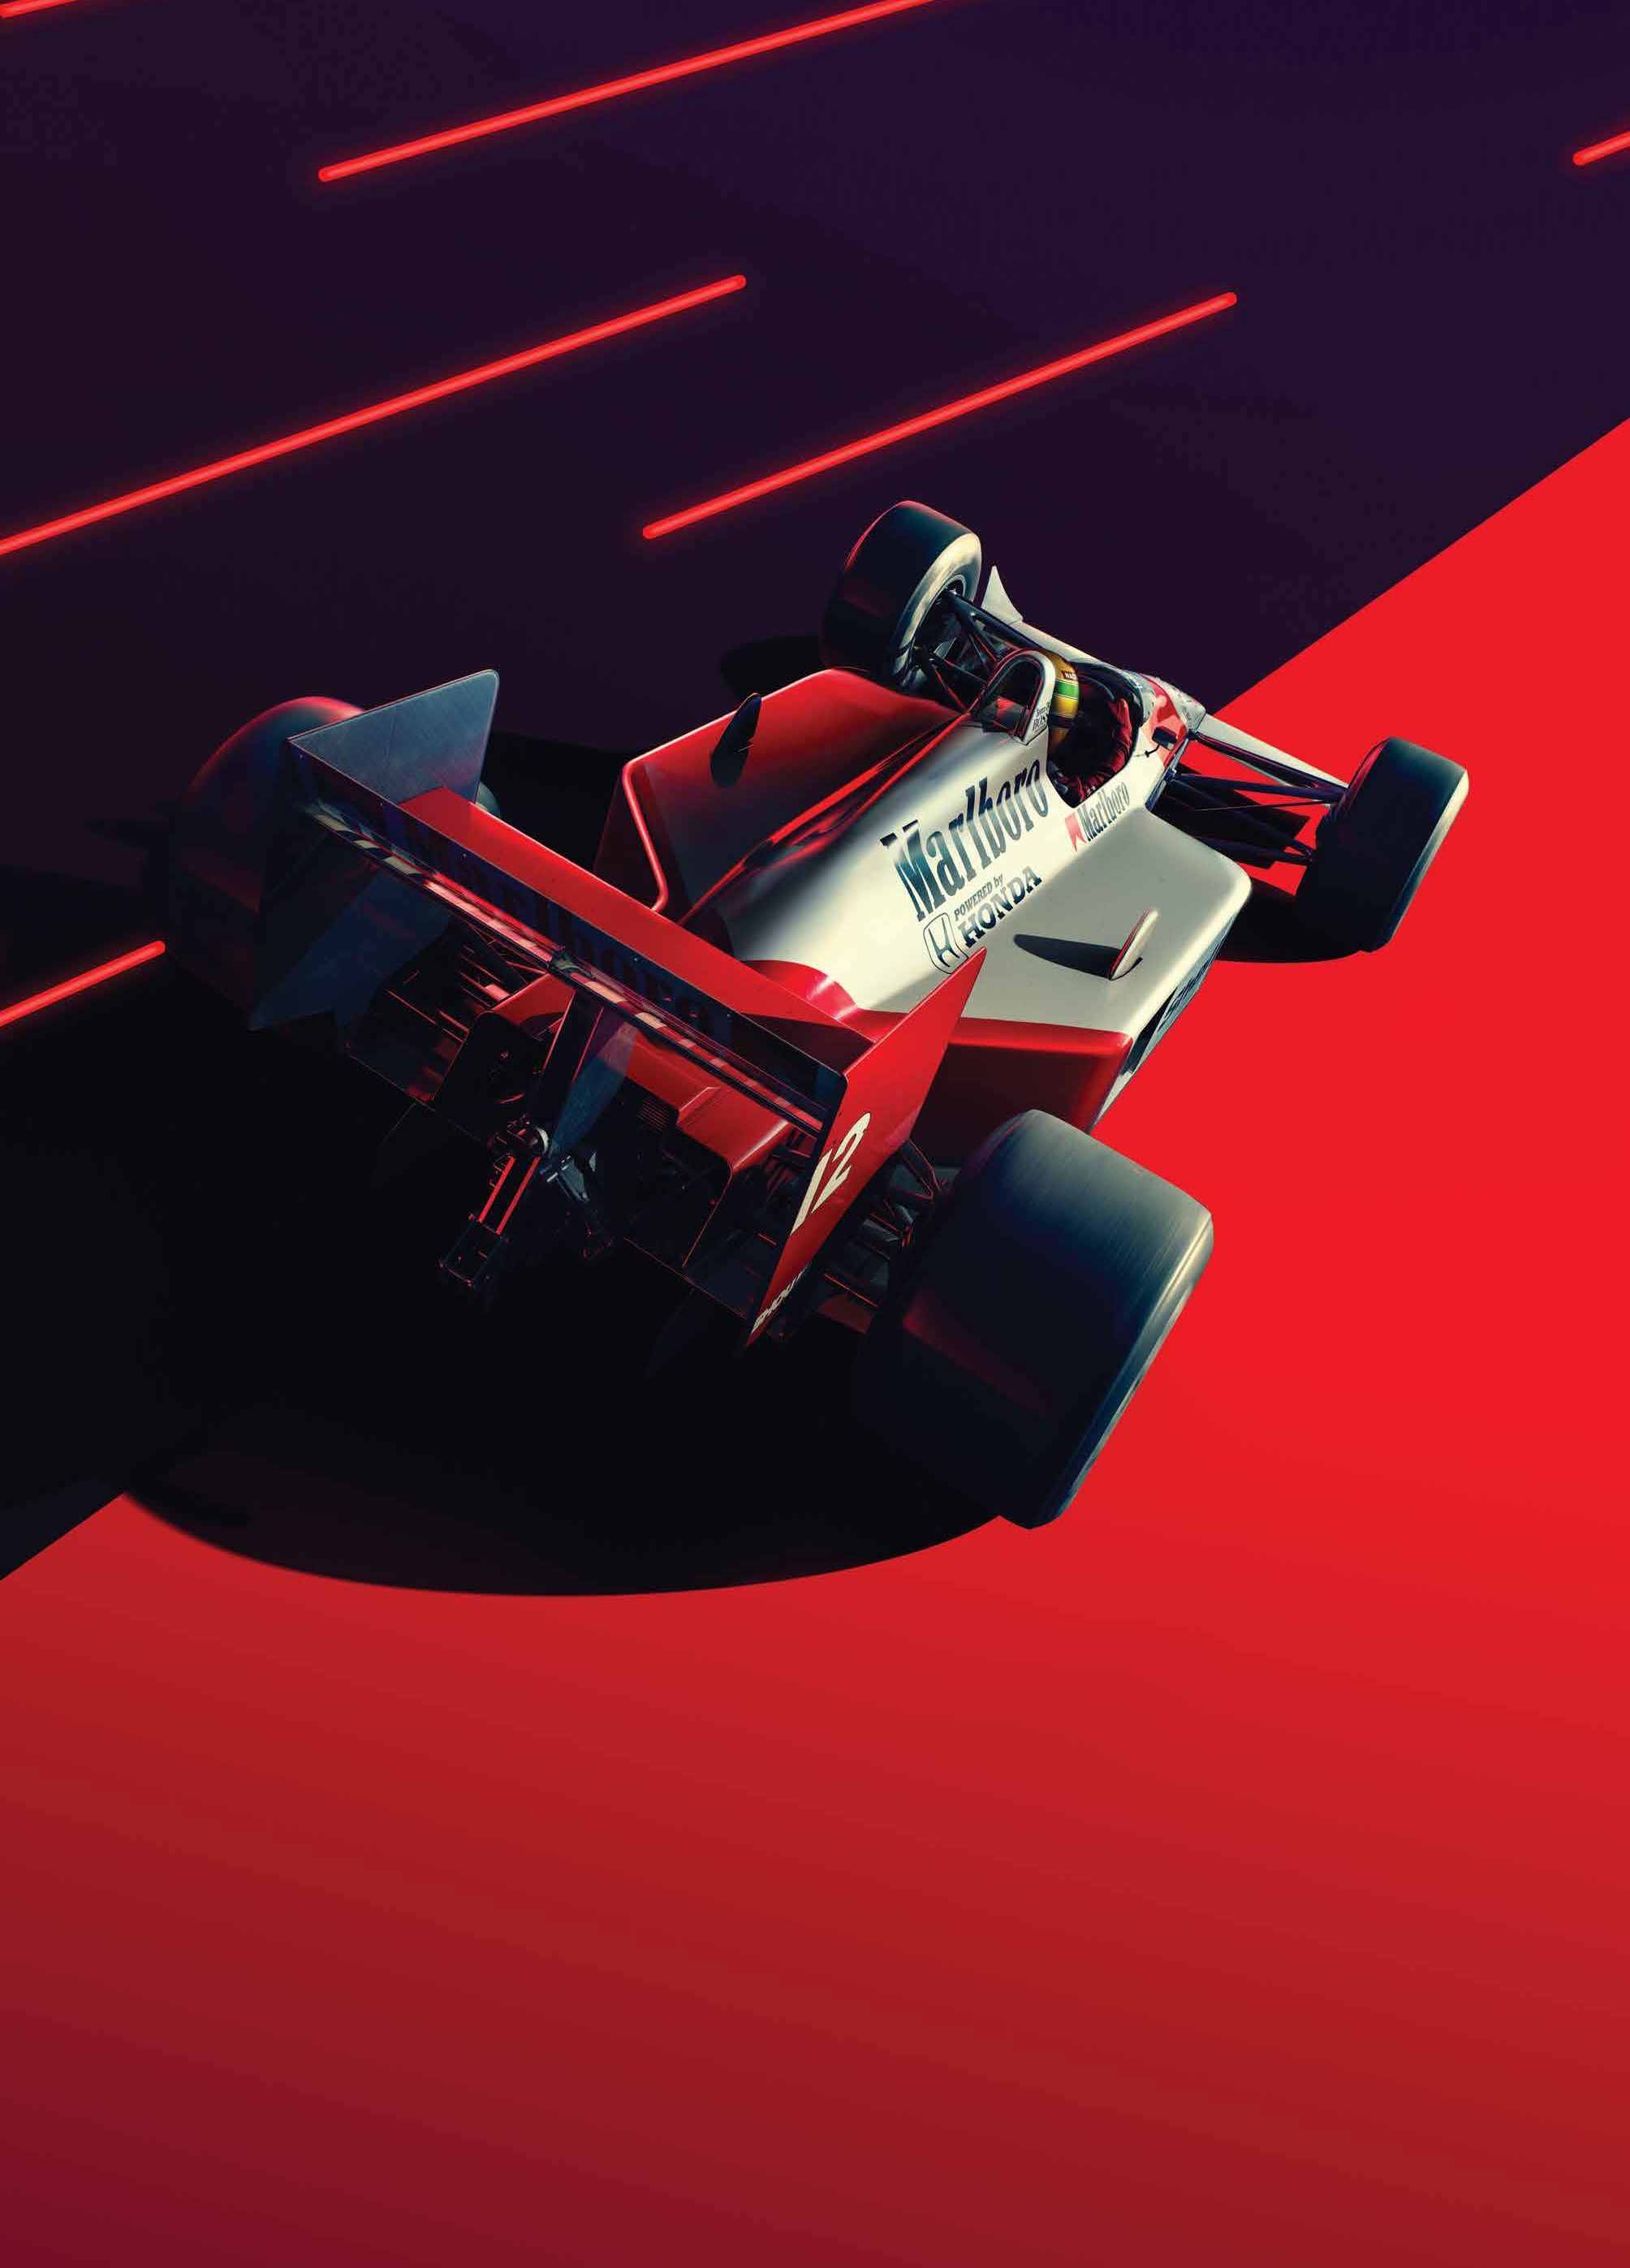 McLaren and Unique Limited launch art print and posters 2008x2794